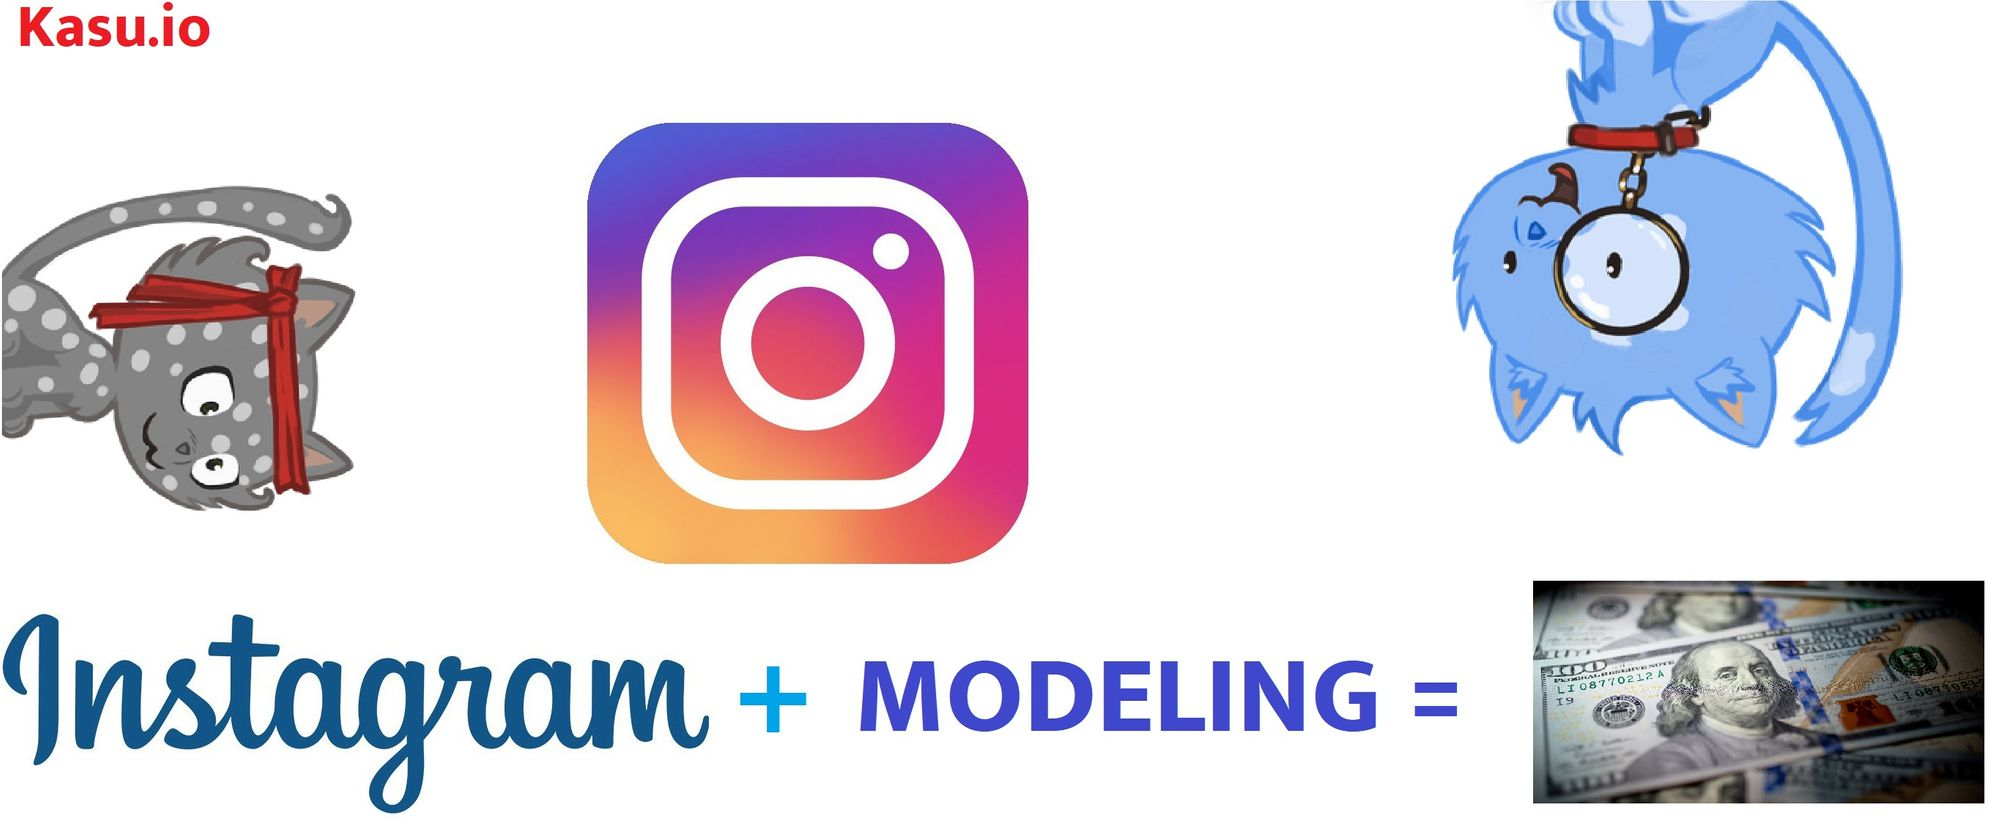 How to get paid as an Instagram Model?